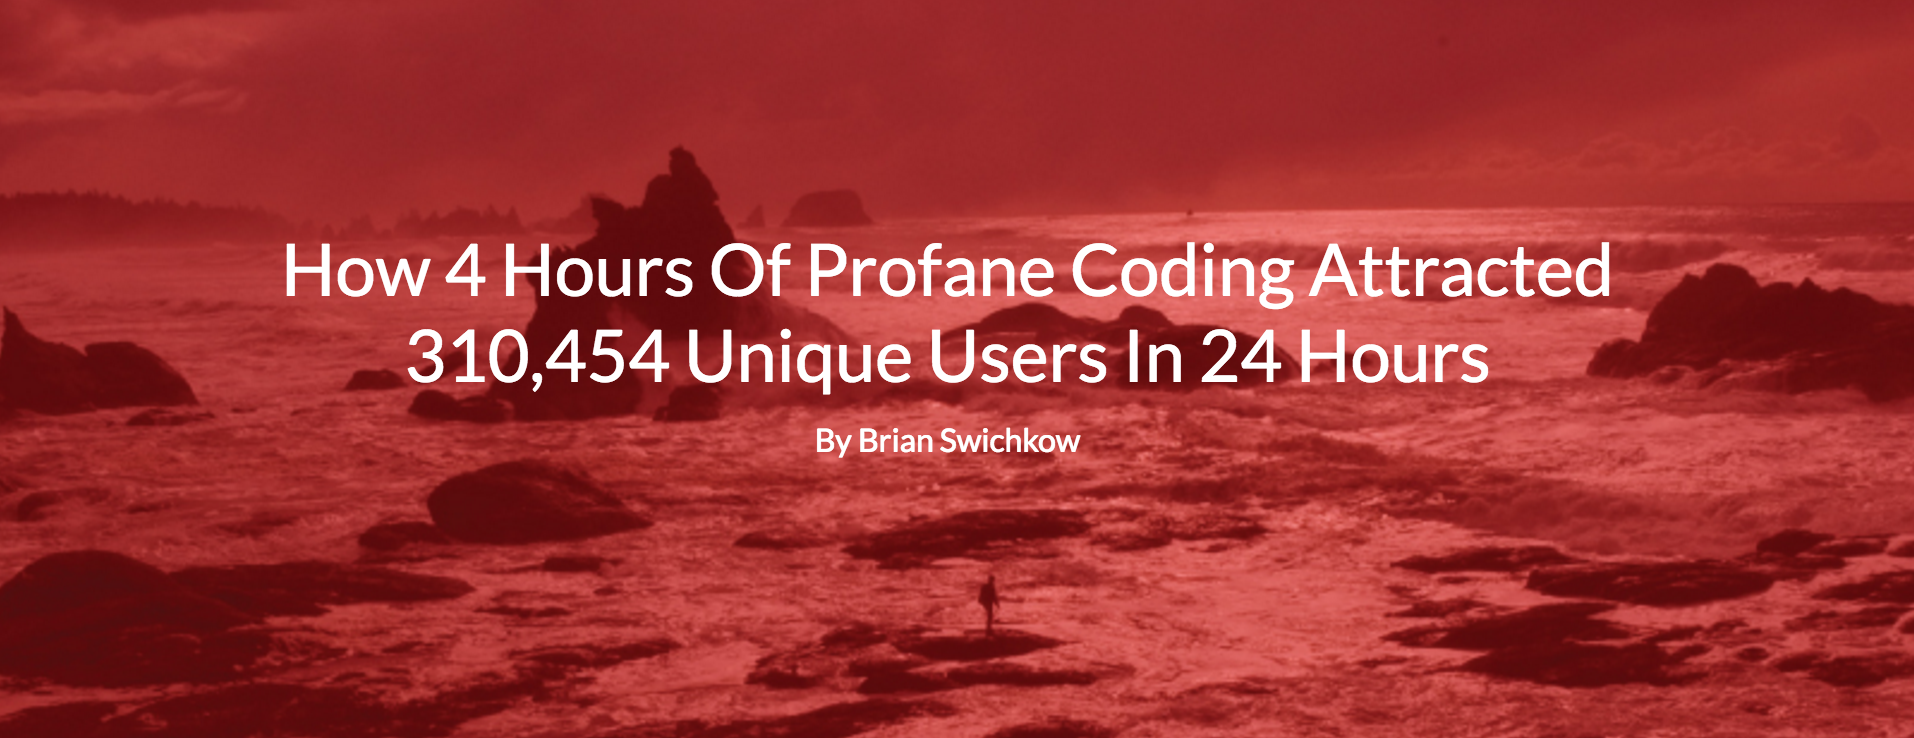 ghost influence editorials How 4 Hours Of Profane Coding Attracted 310,454 Unique Users In 24 Hours